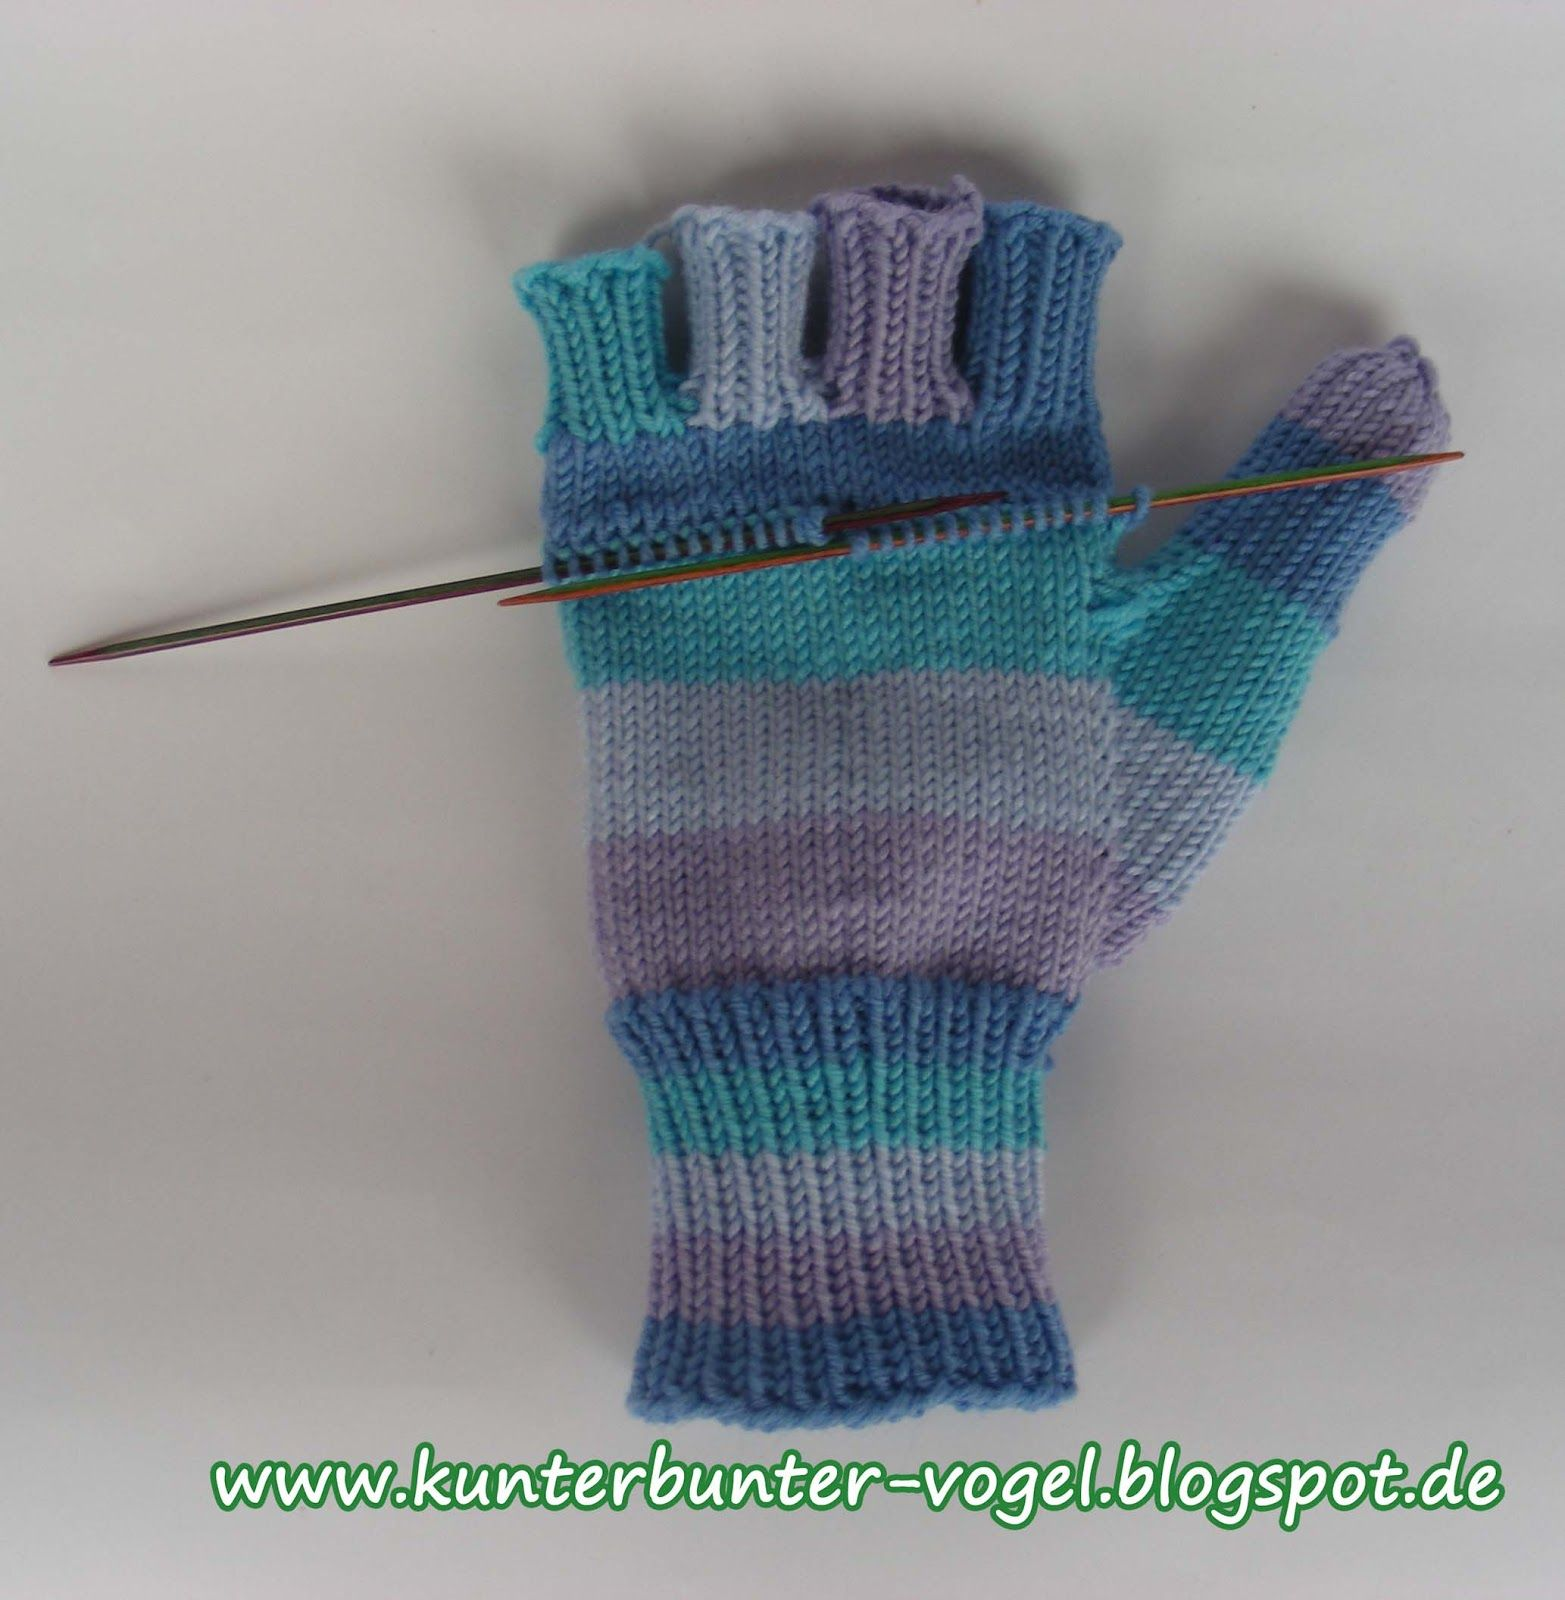 Strick-Blog Handarbeits-Blog Freising Kunterbunter Vogel | Stricken ...